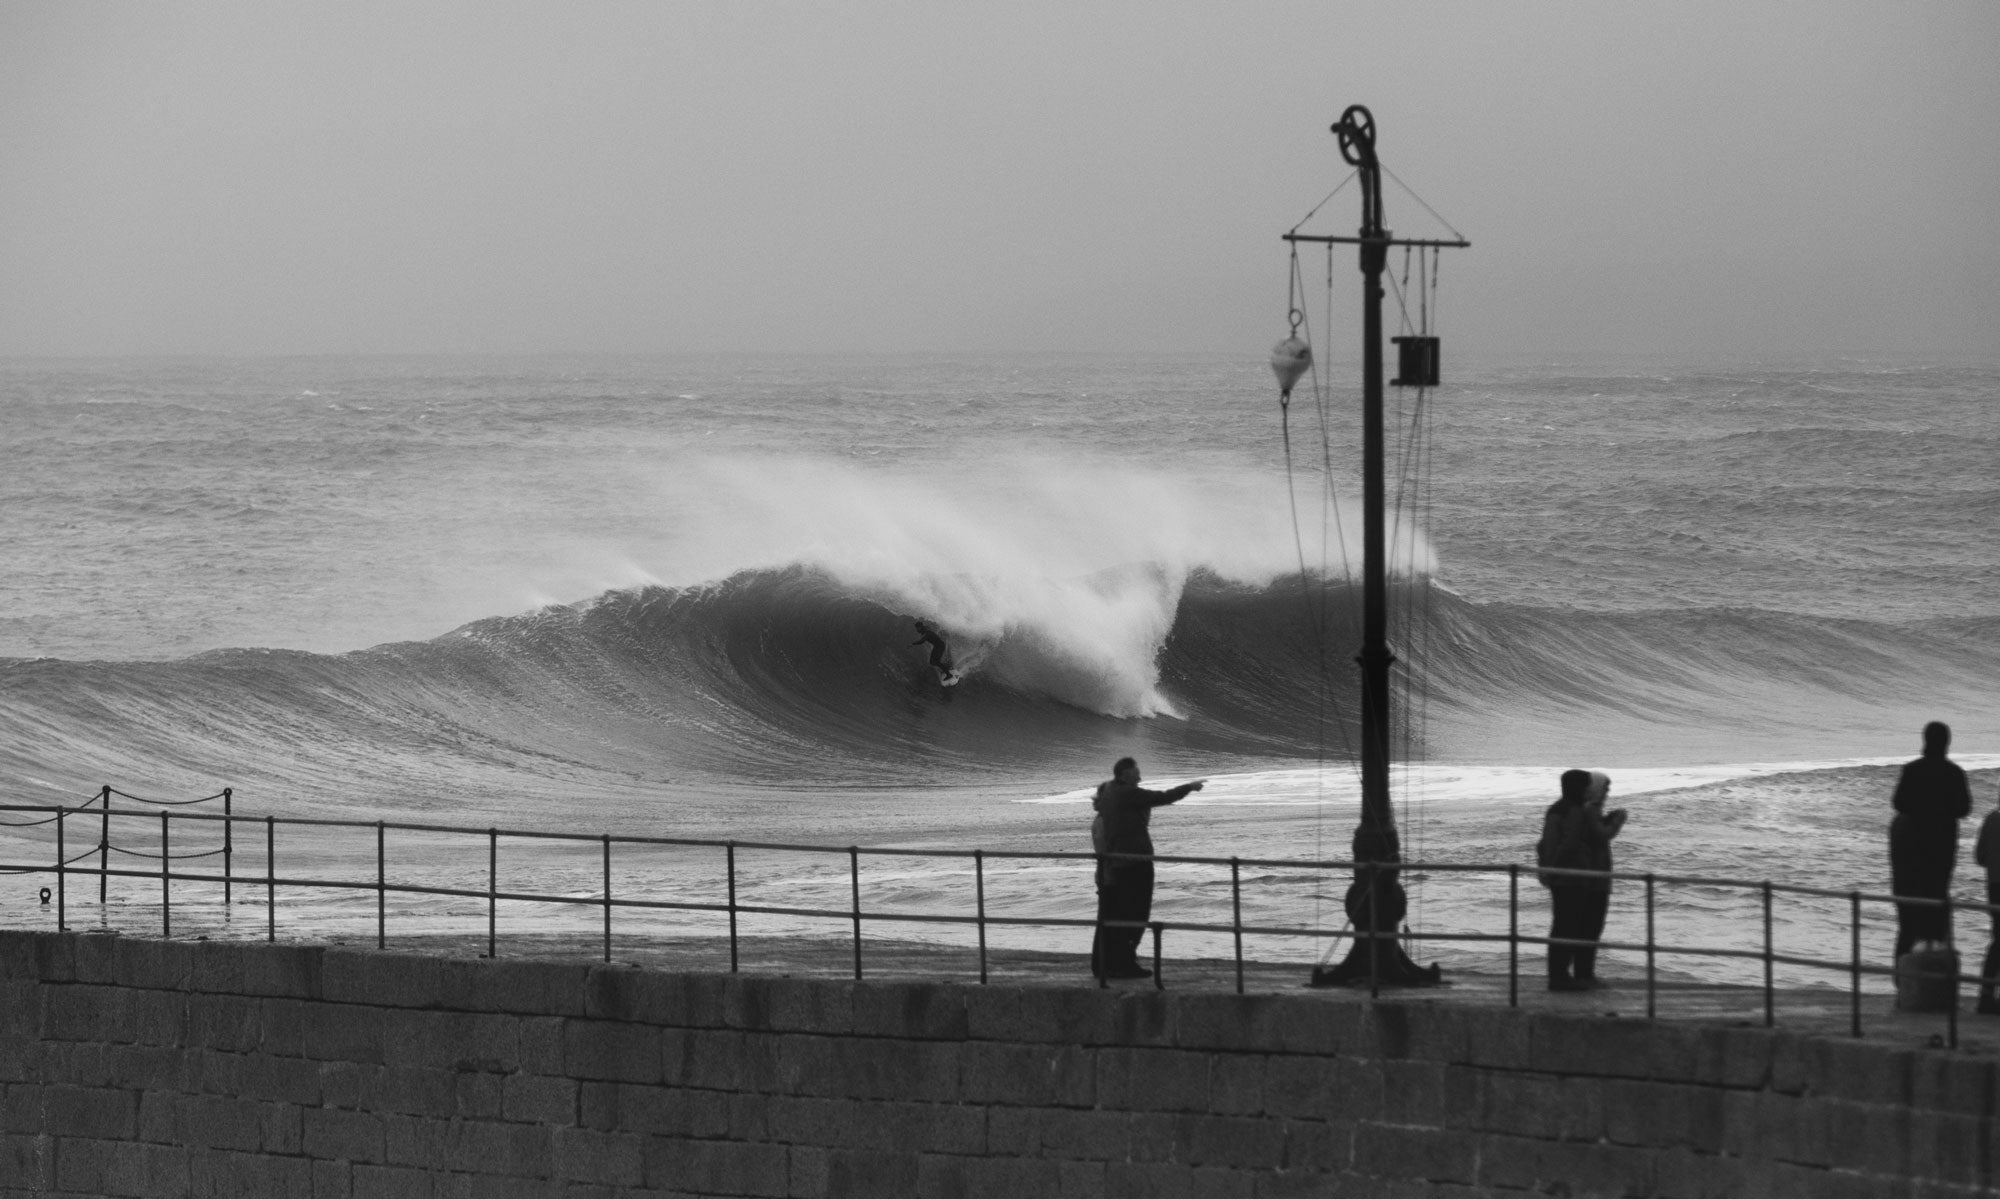 Onlookers watch from the harbour as an unknown surfer navigates a heavy barrel - imagecredit JackJohns